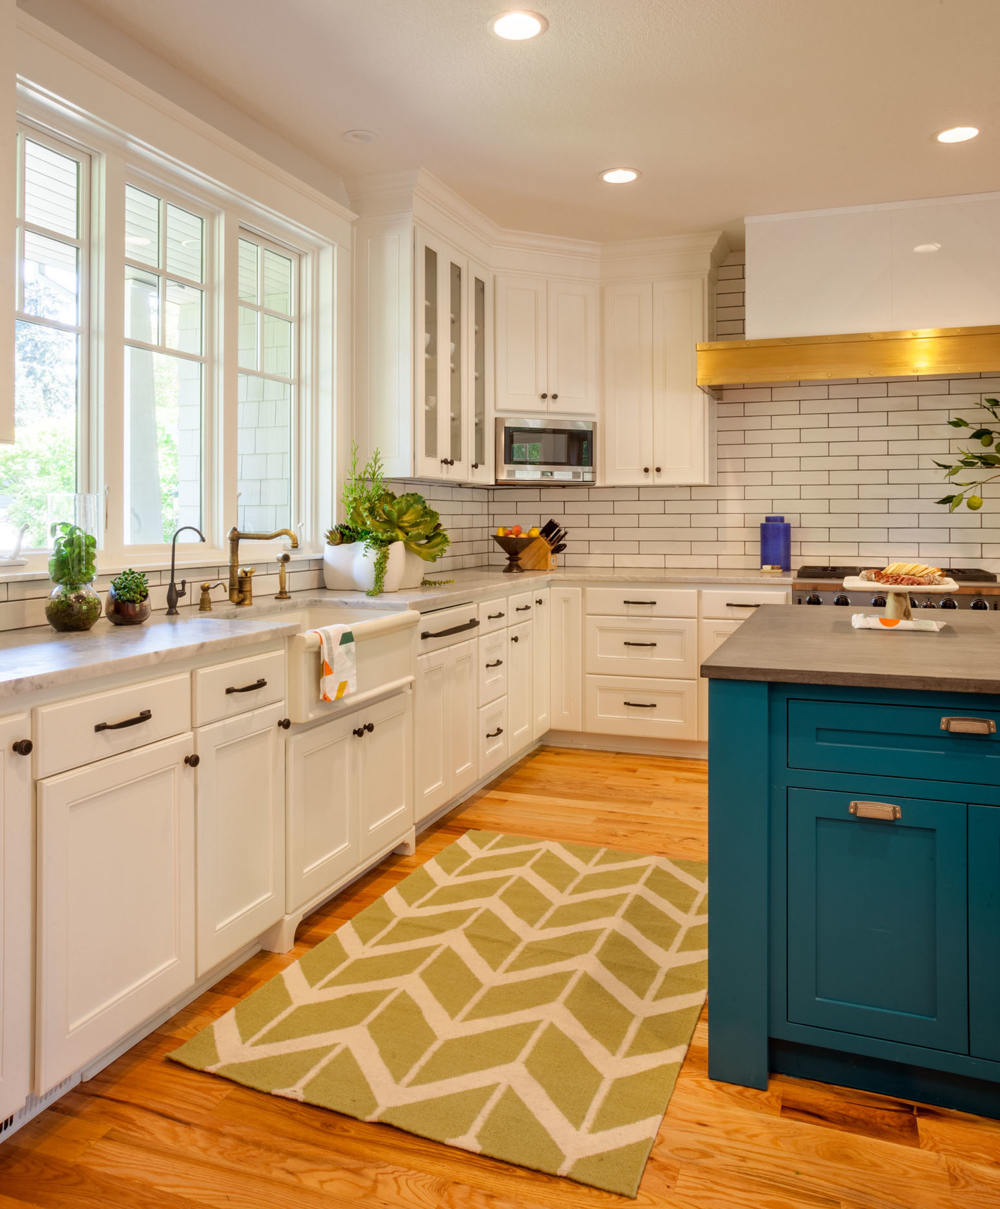 Kitchen Cabinets: 20 Gorgeous Kitchen Cabinet Color Ideas For Every Type Of